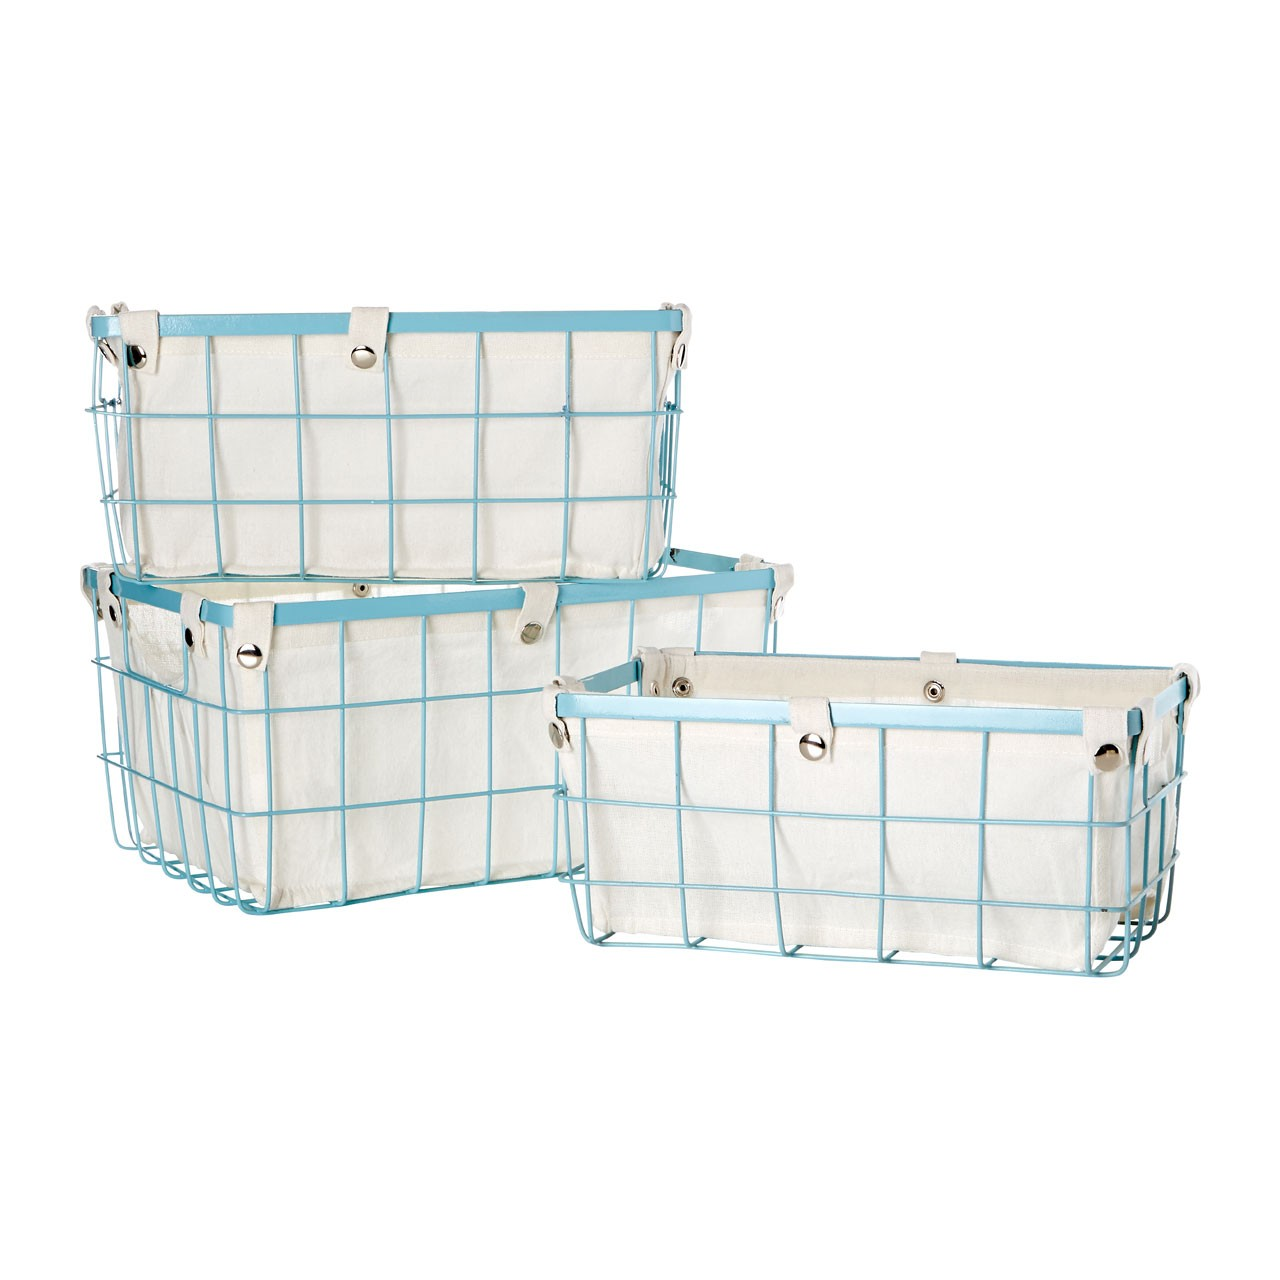 Prime Furnishing Rectangle Blue Wire Storage Basket - Set of 3